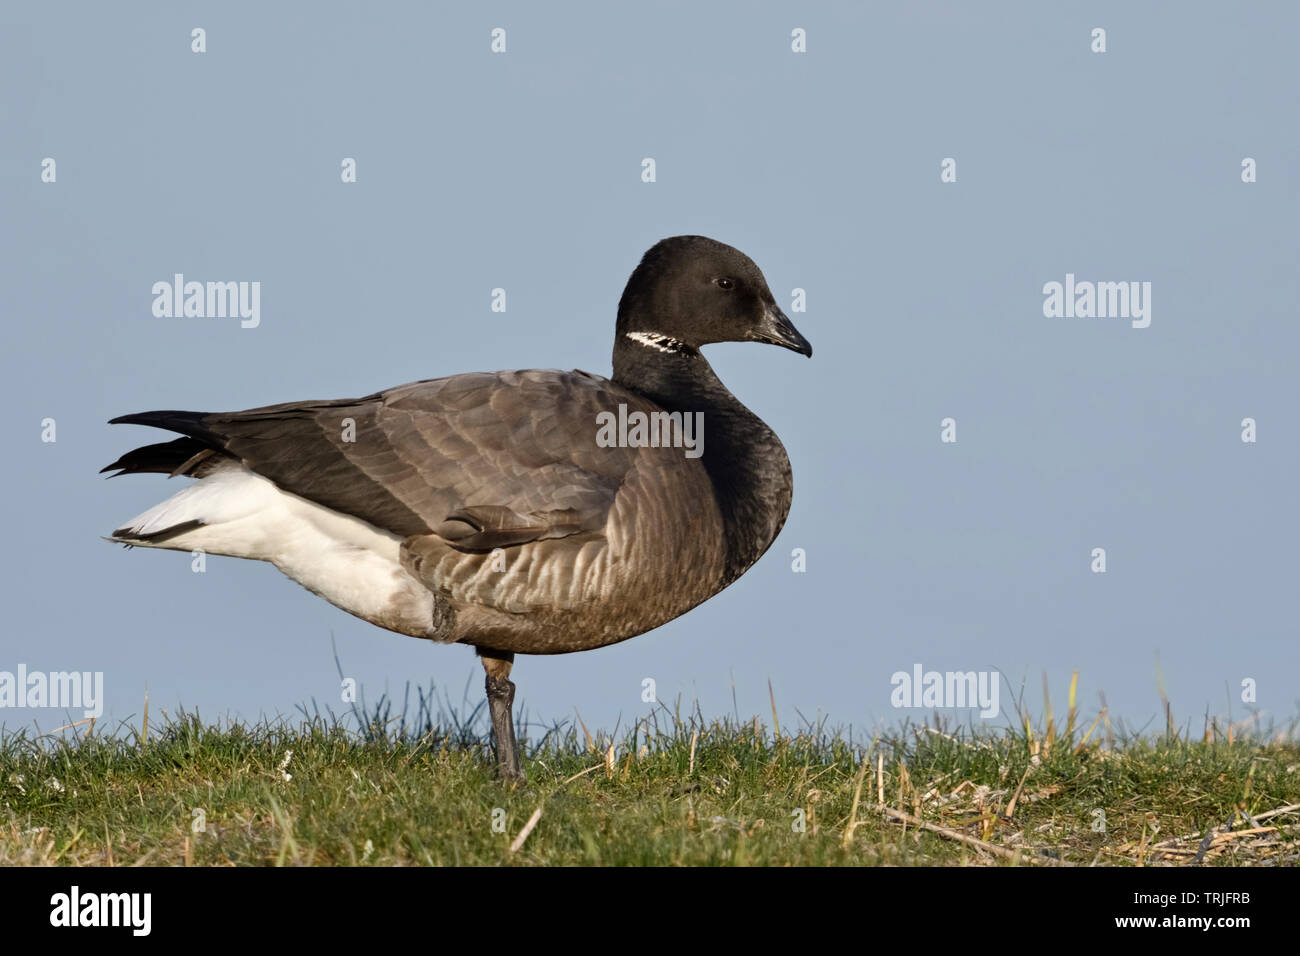 Brent Goose / Ringelgans ( Branta bernicla ), adult, nice and detailed side view, wildlife, Netherlands, Europe. - Stock Image